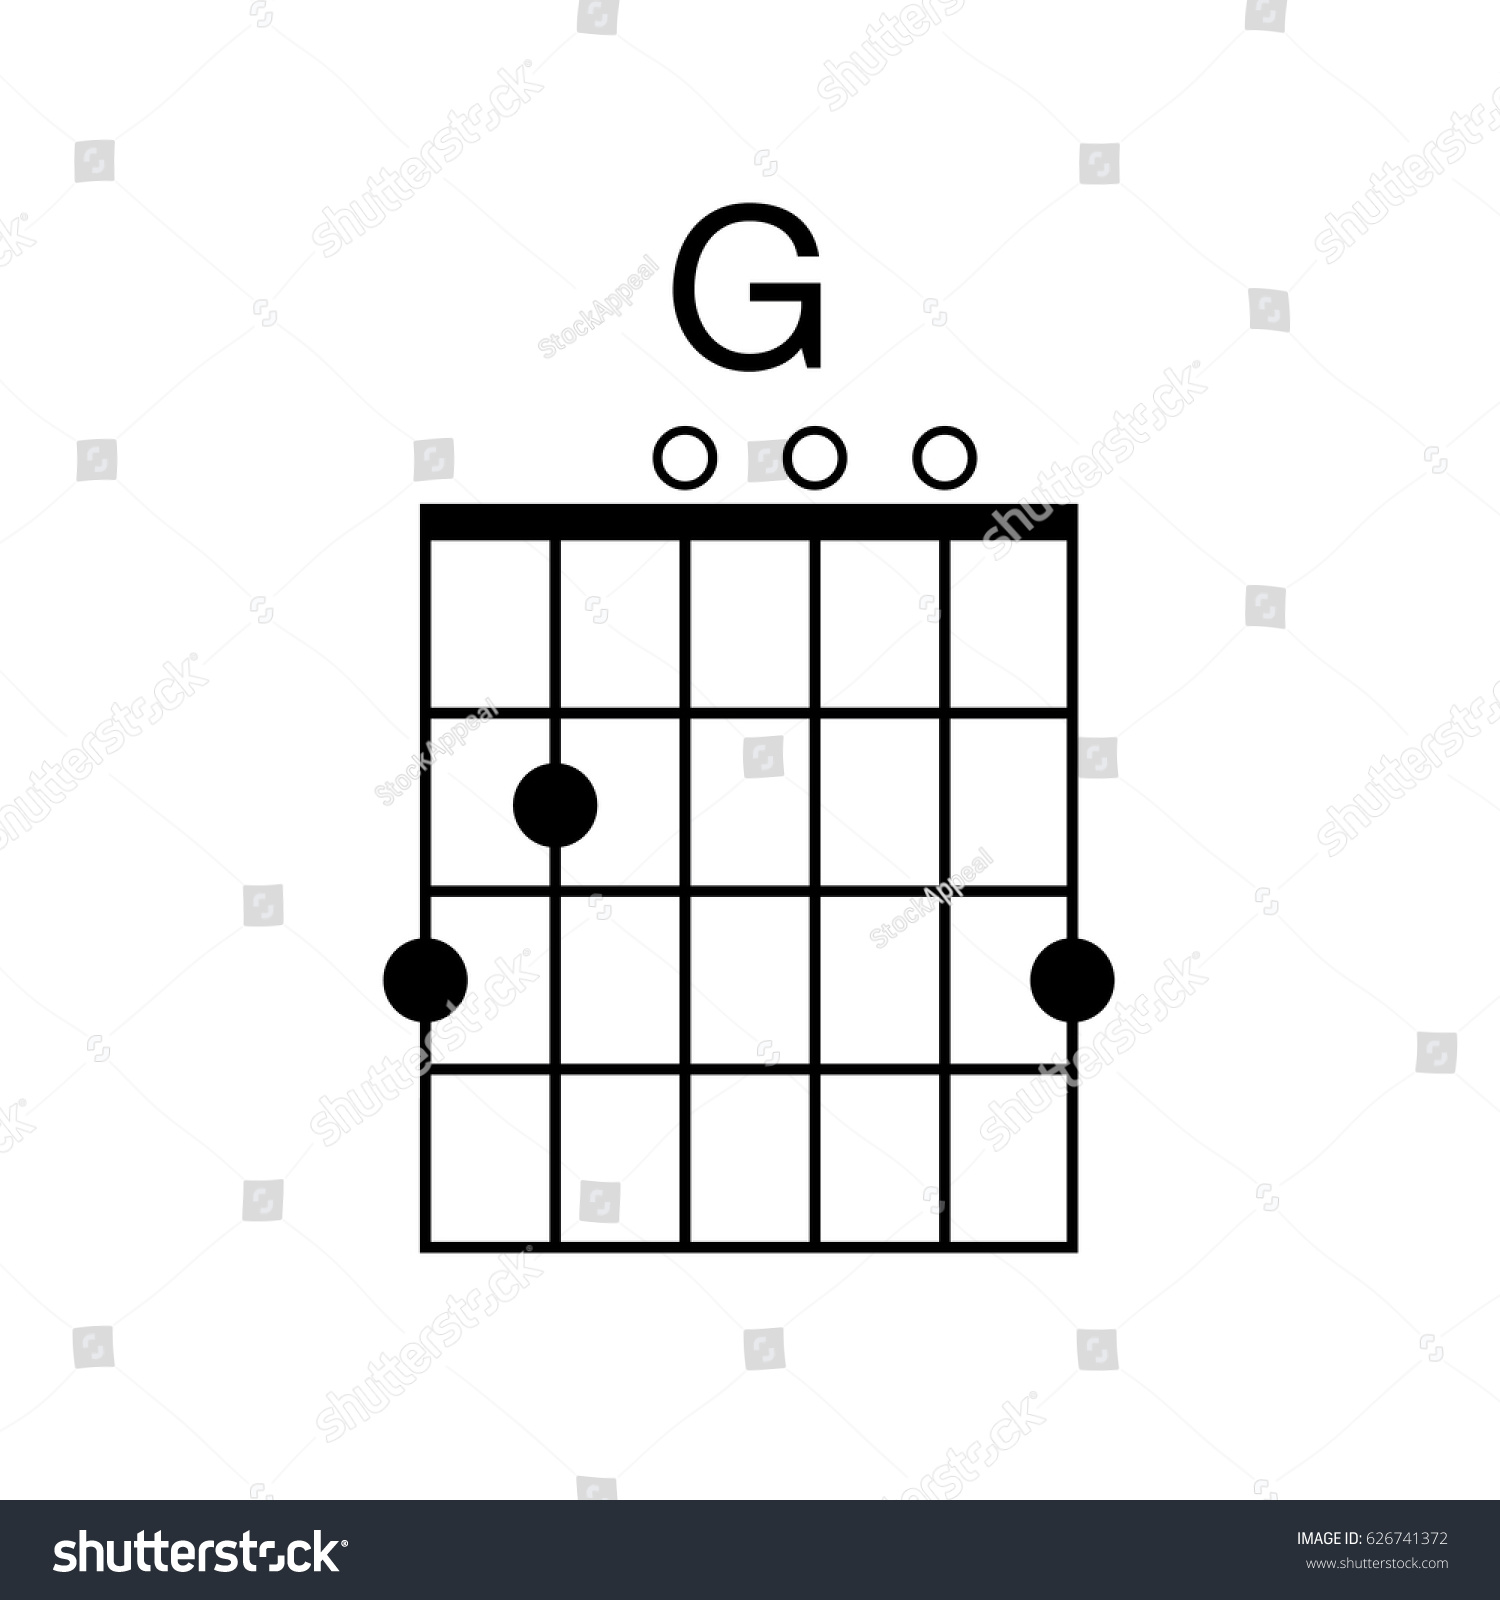 Vector Guitar Chord G Chord Diagram Stock Vector Royalty Free